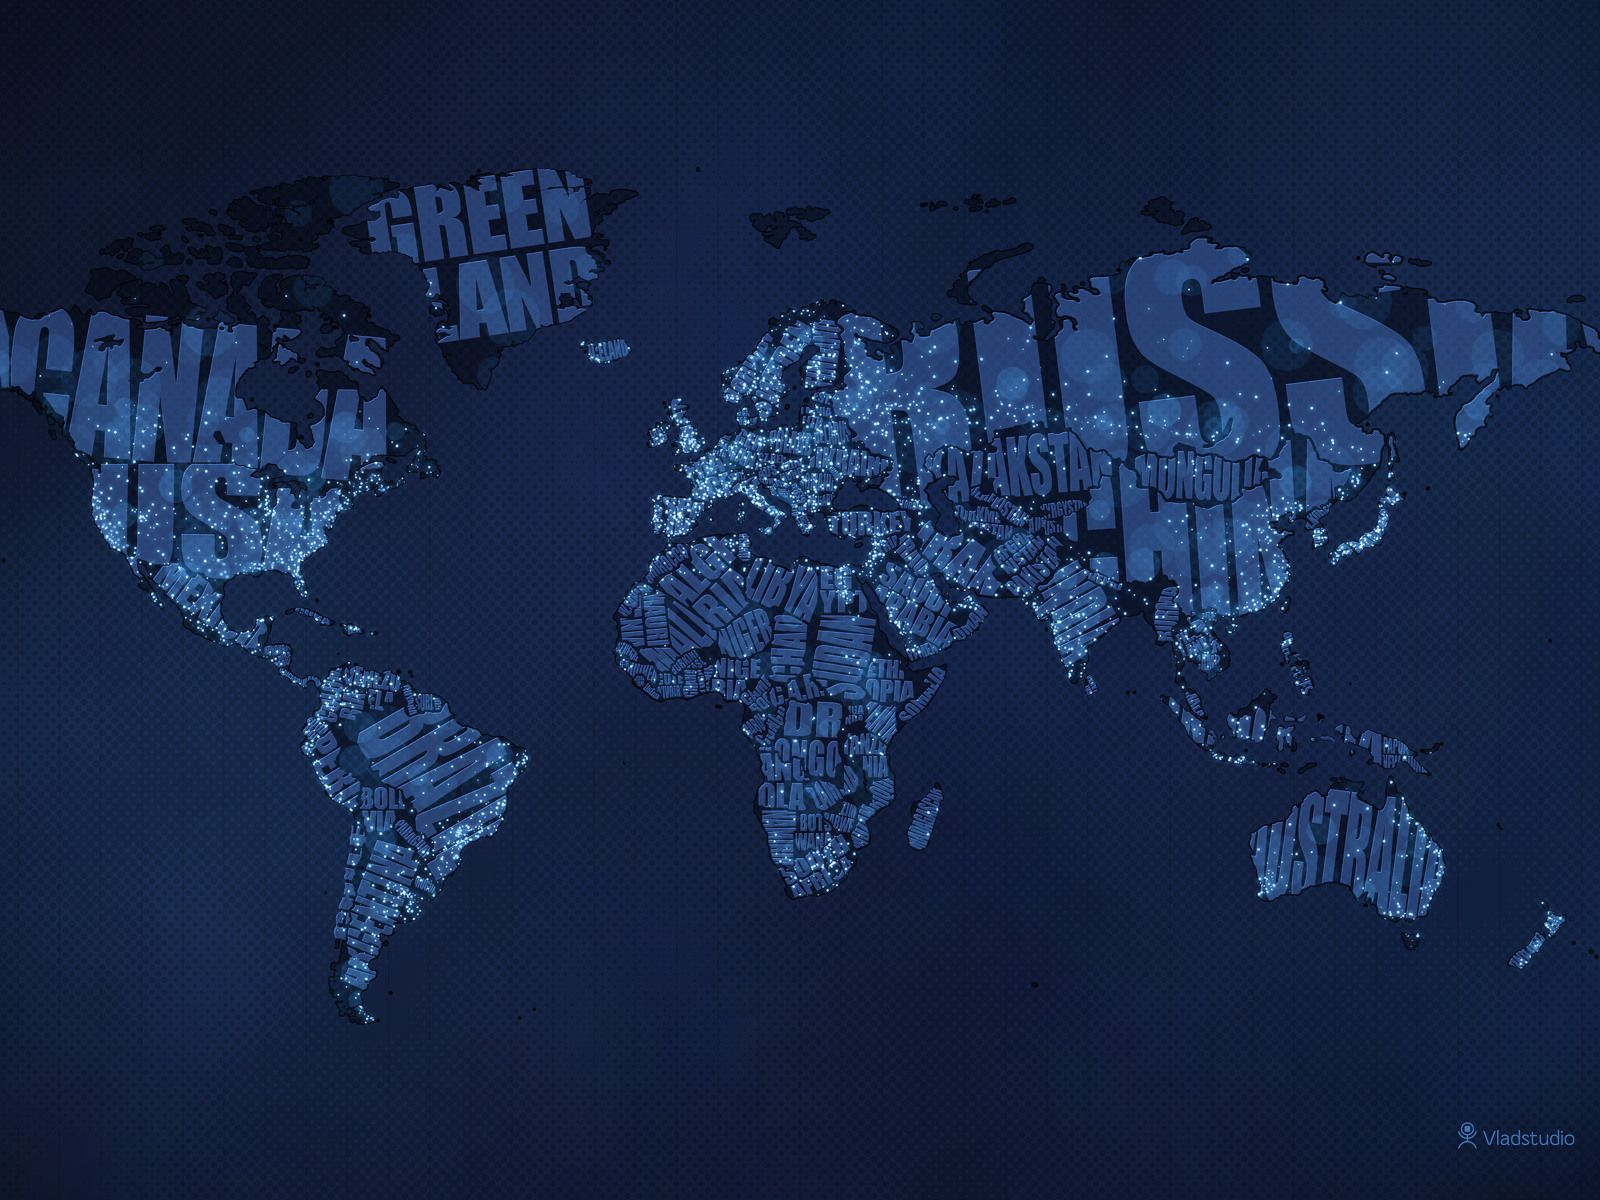 Word world map by vlad studio wallpaper 1600x1200 wallpaper world map desktop wallpaper night view gumiabroncs Image collections